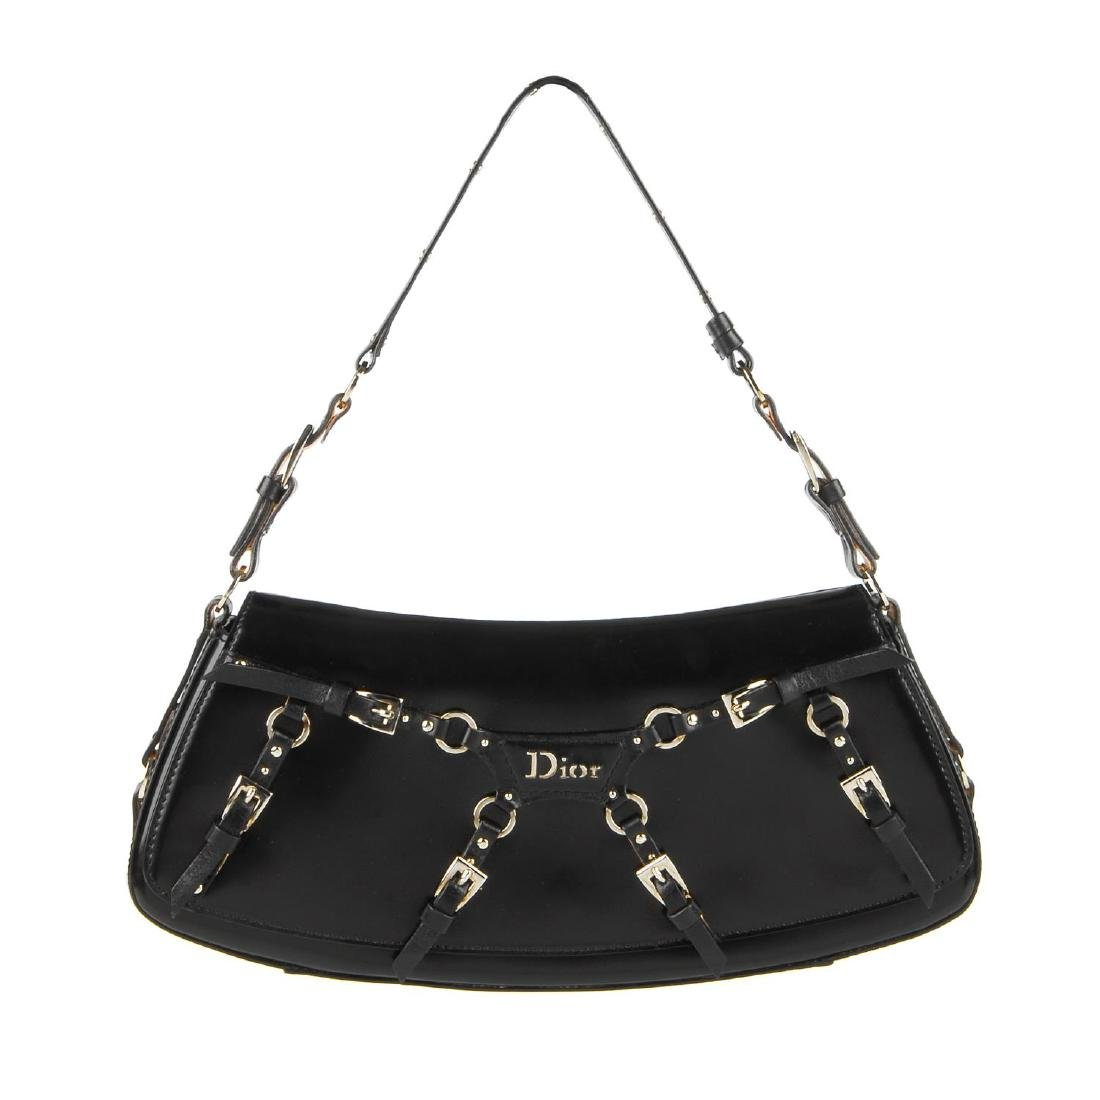 CHRISTIAN DIOR - a black coated leather baguette